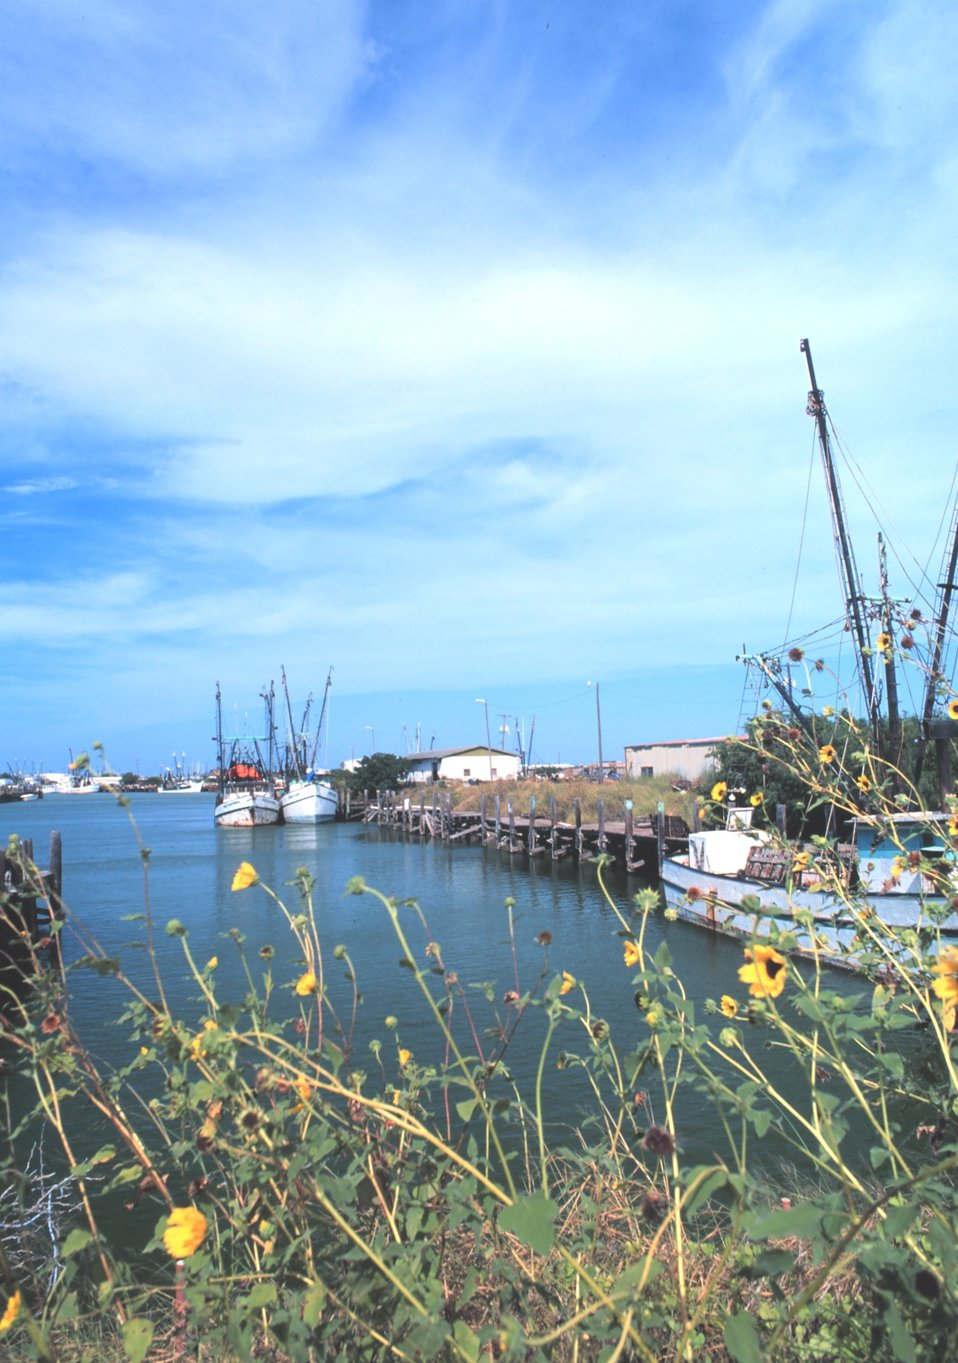 Shrimp boats and sunflowers